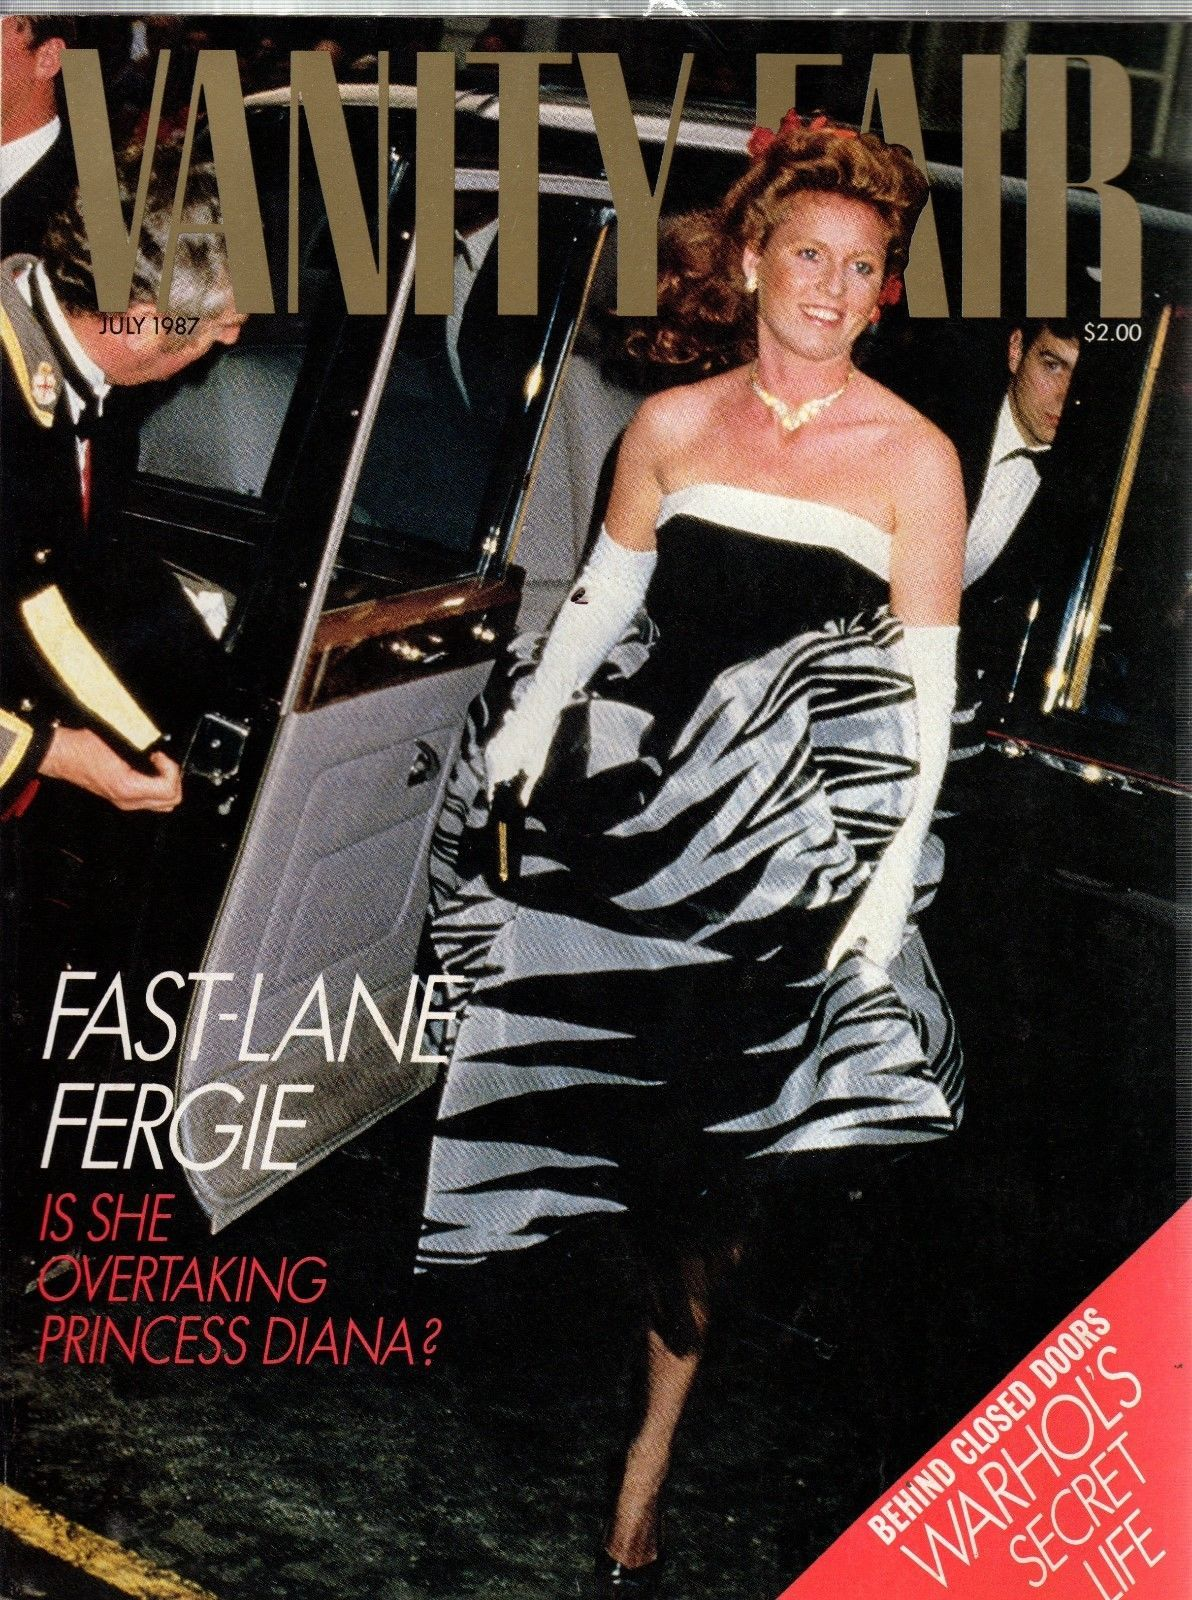 Primary image for Vanity Fair Magazine July 1987 Fast Lane Fergie- Warhol's Secret Life